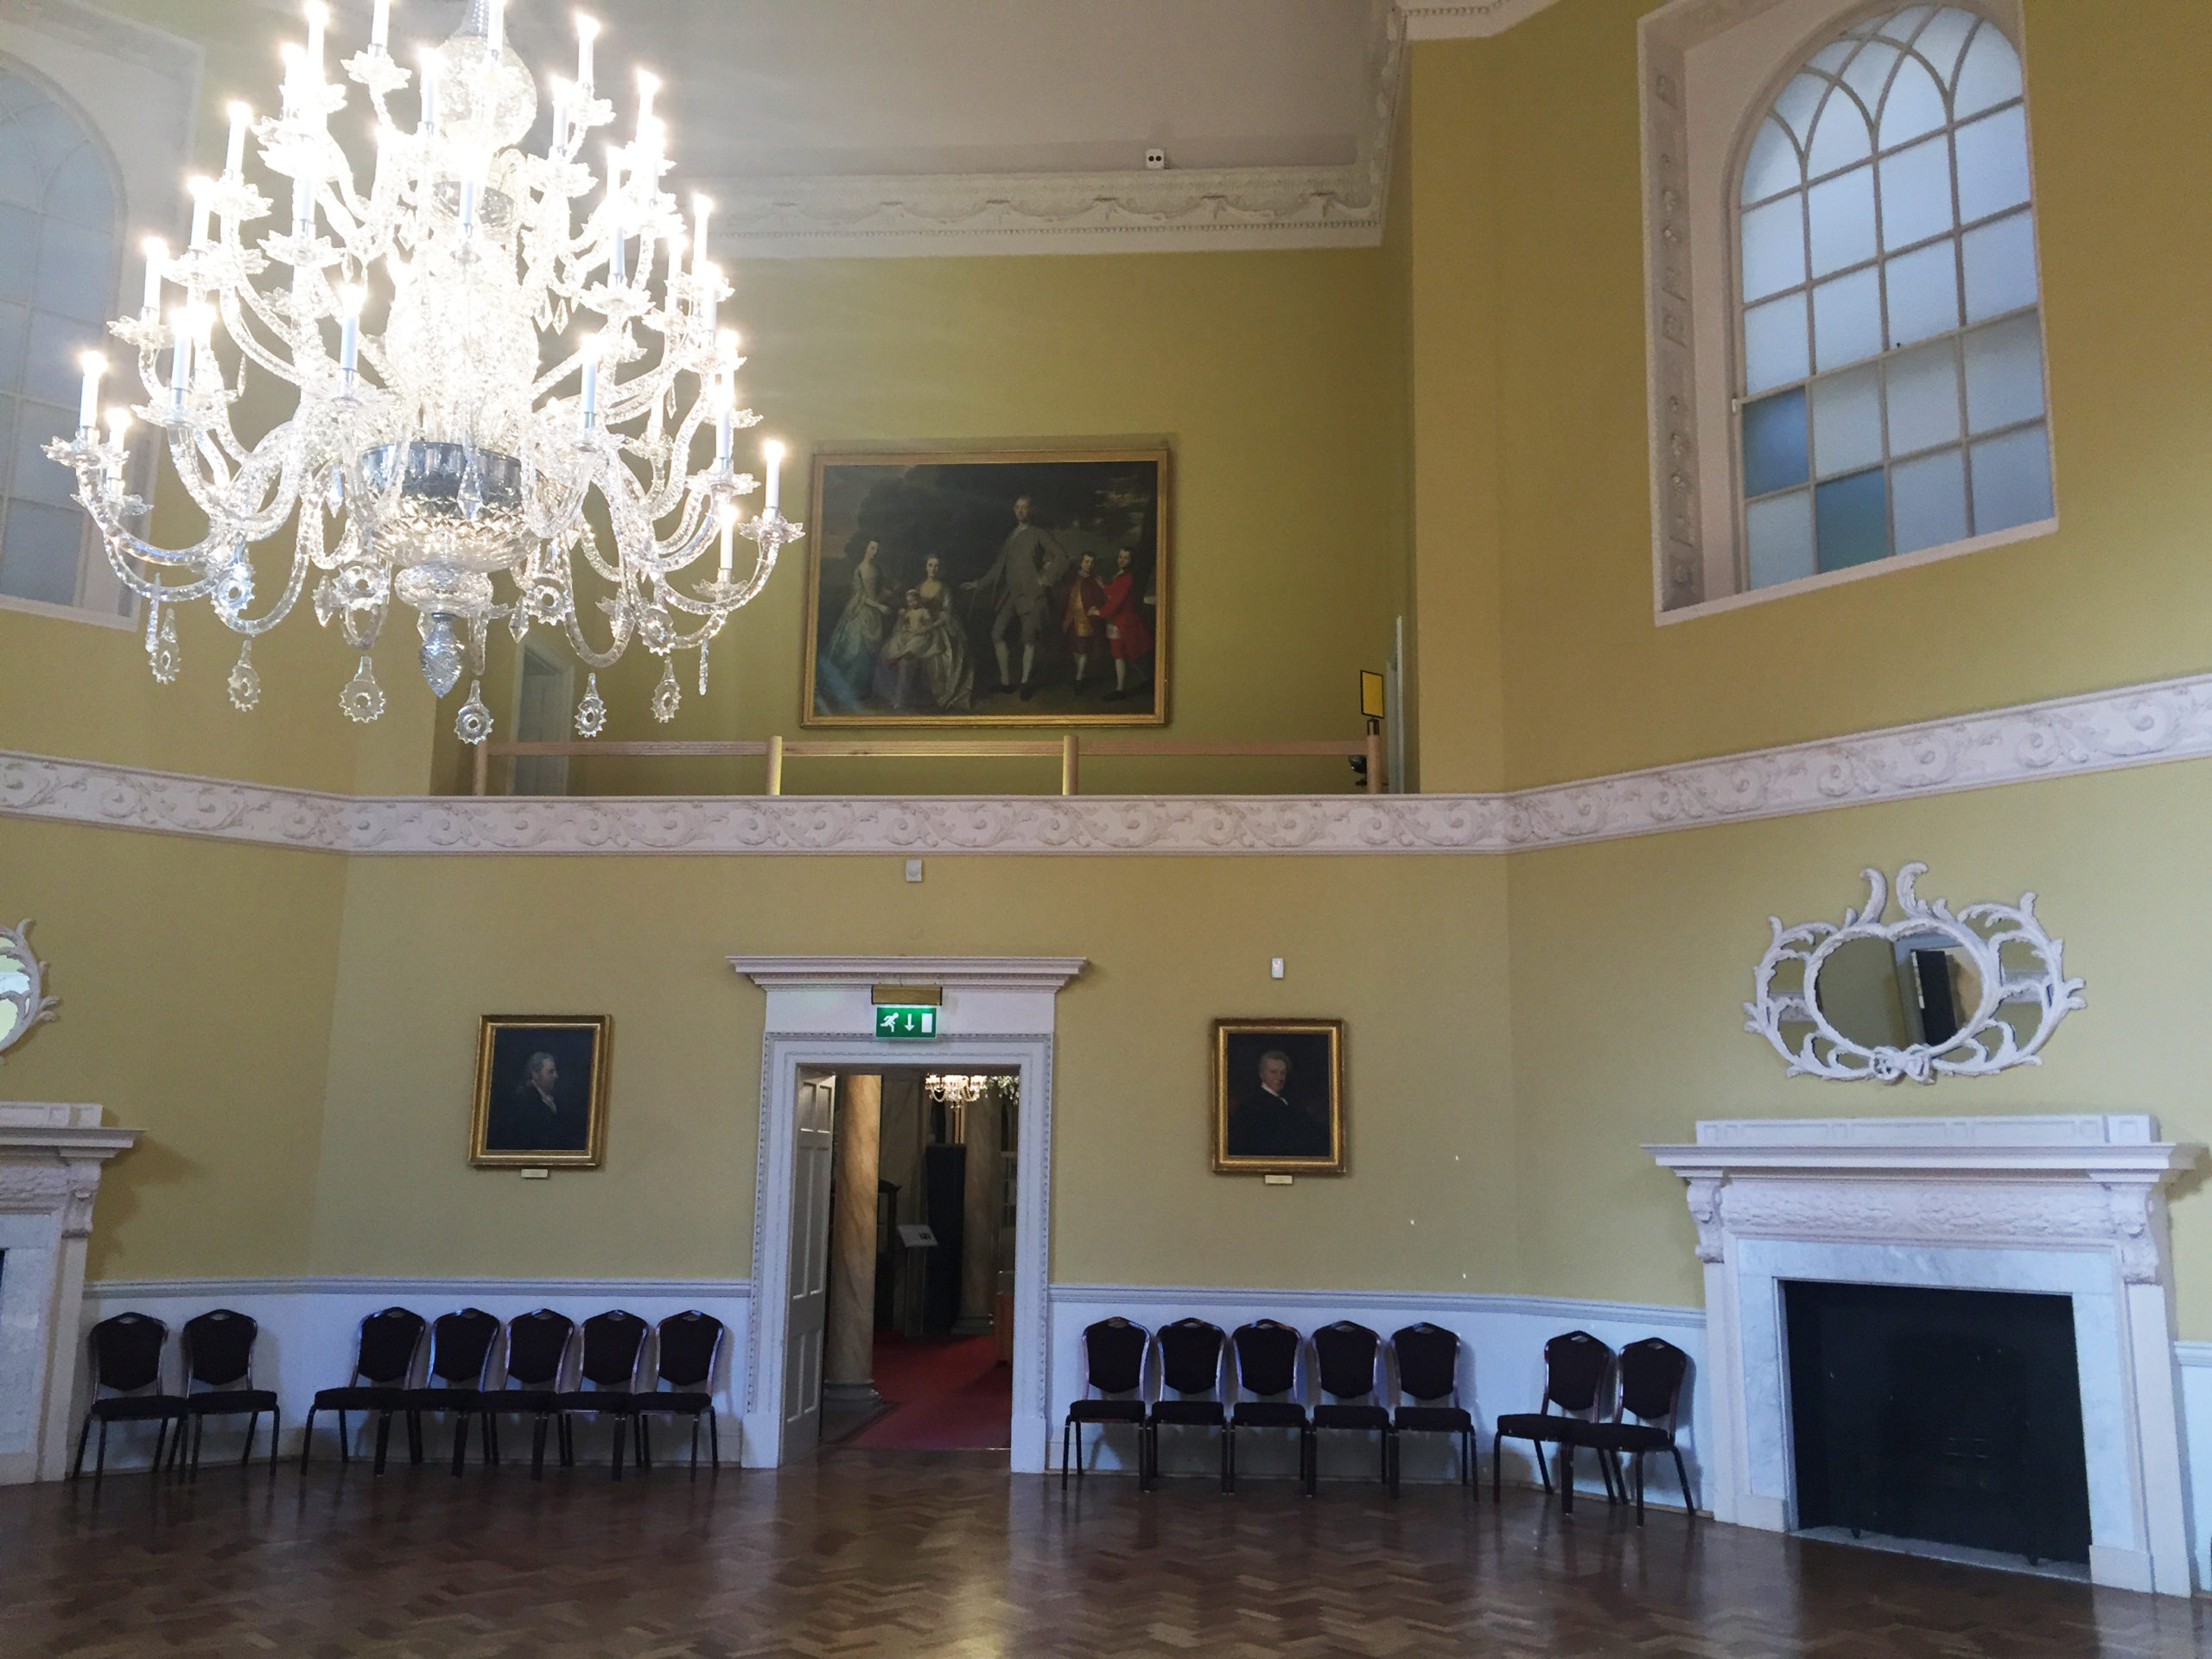 The Bath Assembly Octagon Room